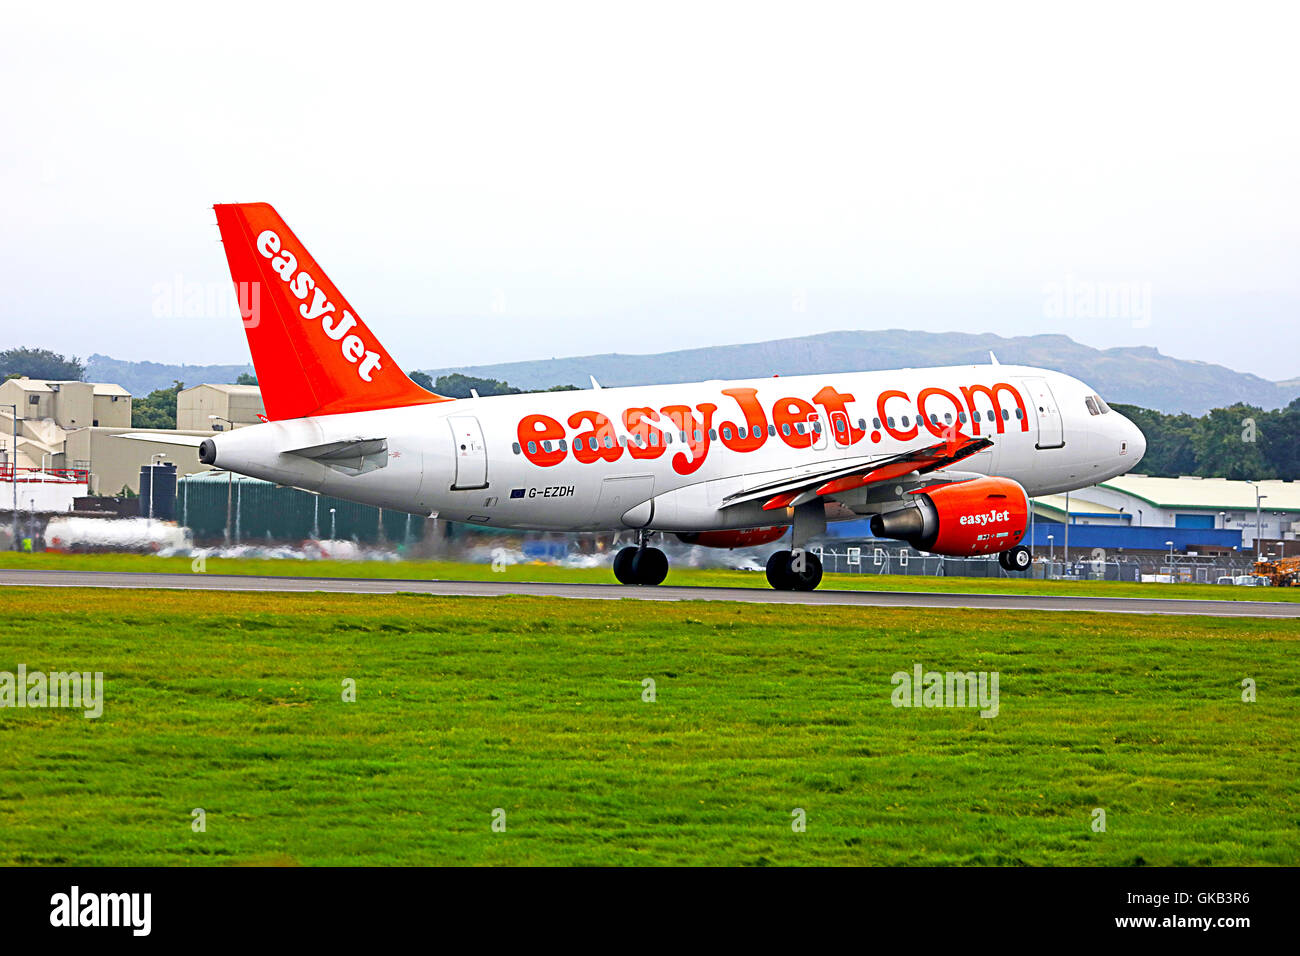 Easyjet (Airbus A319-111} taking off from Edinburgh Airport.Scotland, - Stock Image